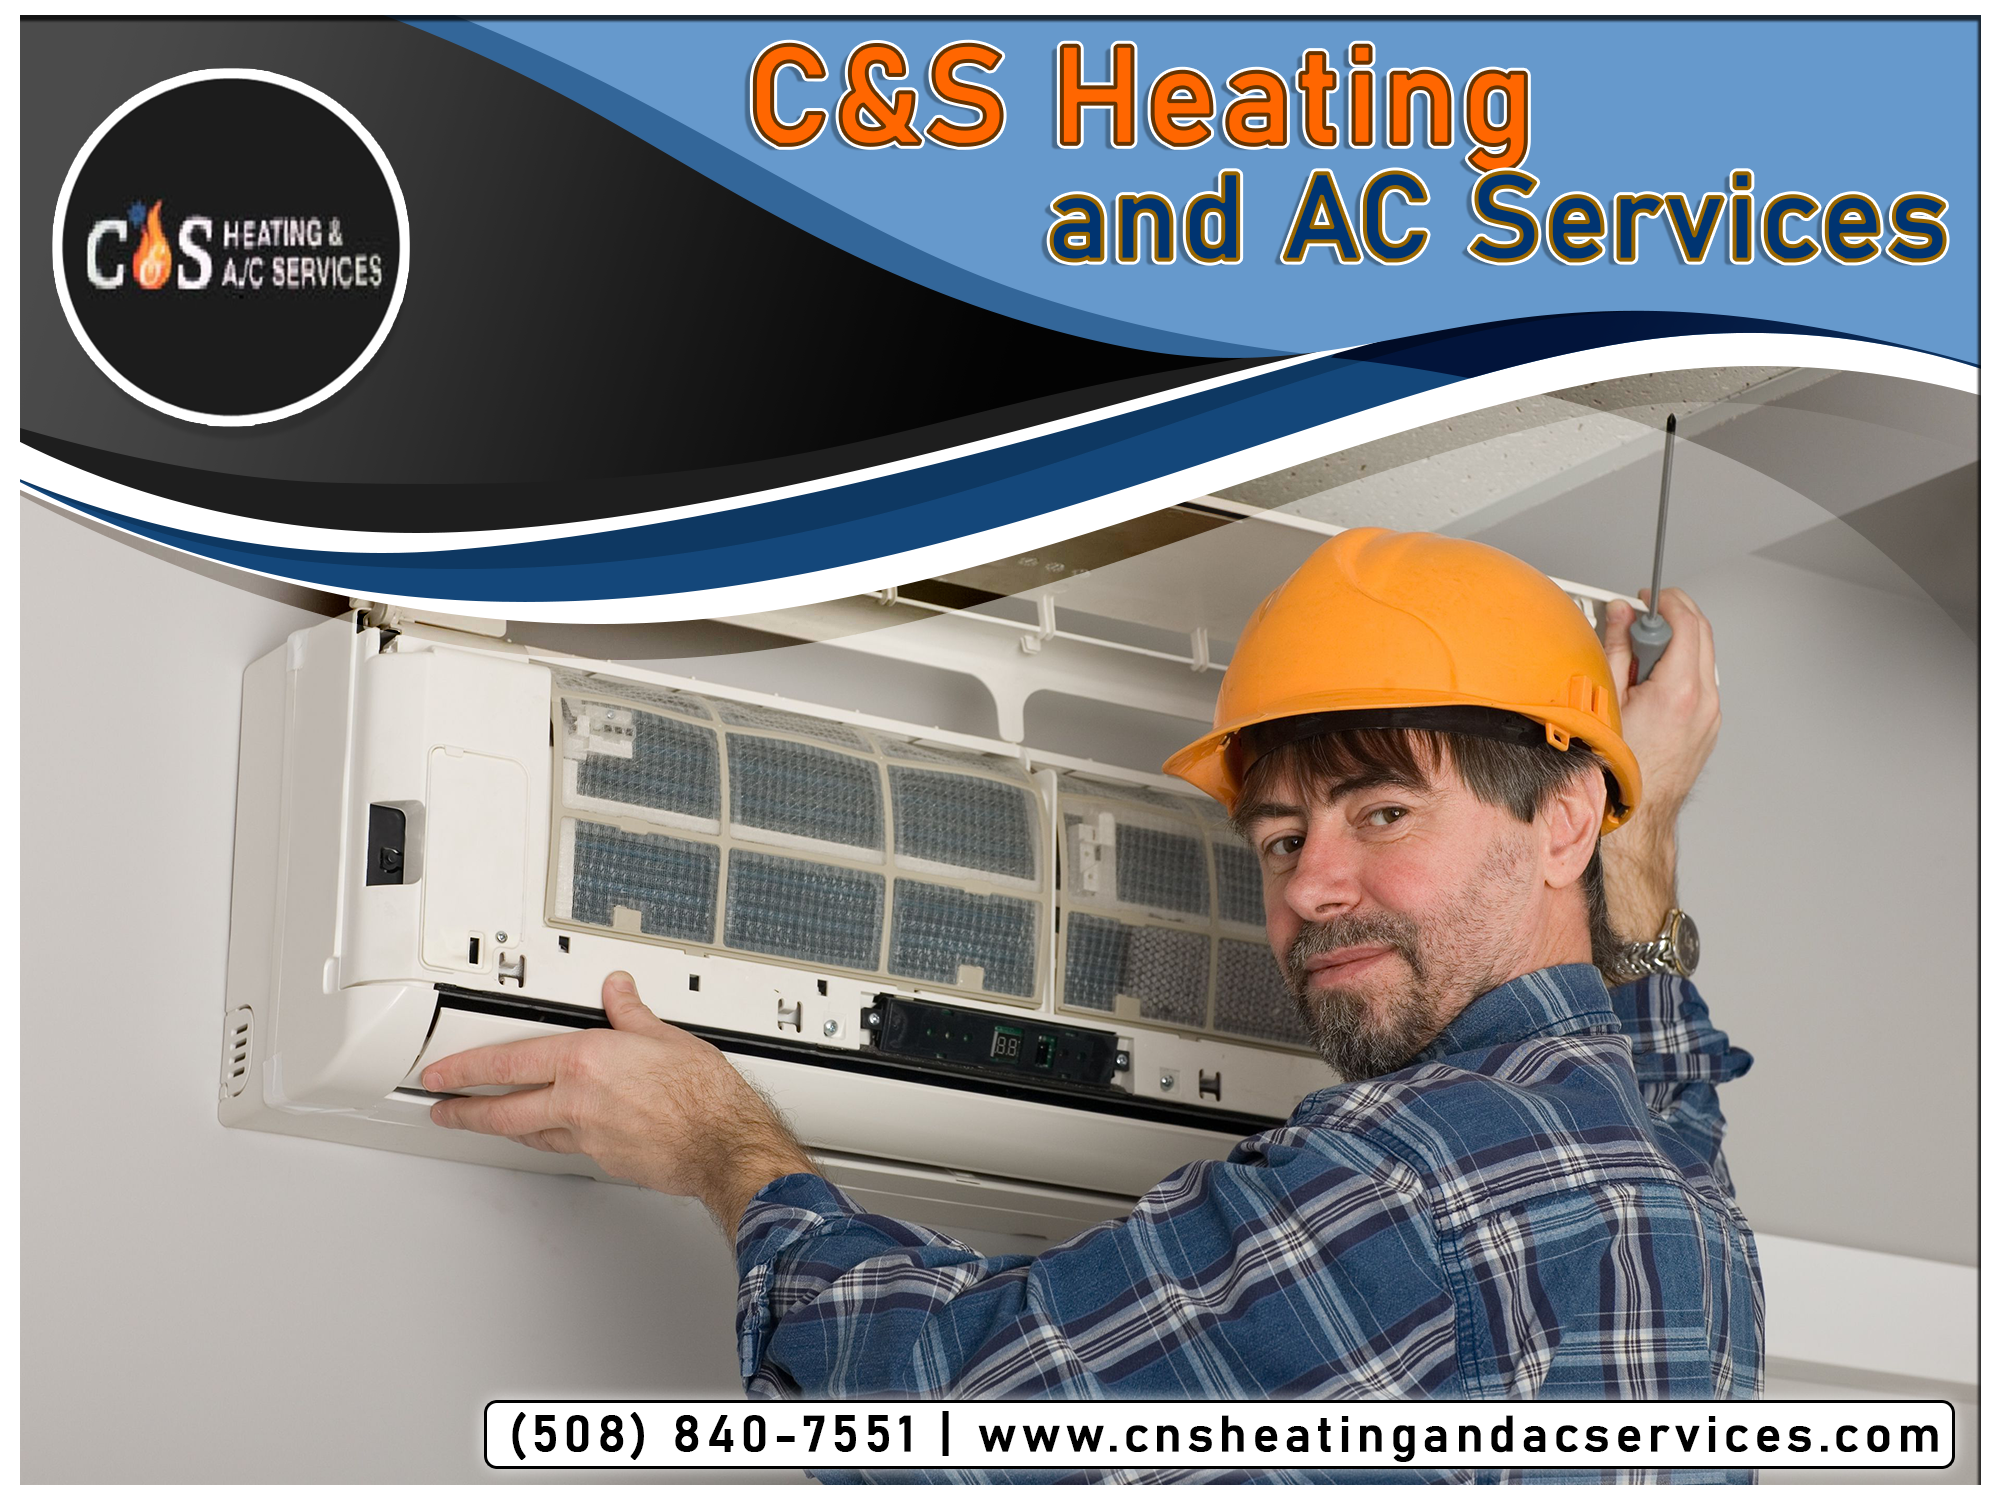 At C&S Heating and AC Services, we offer an